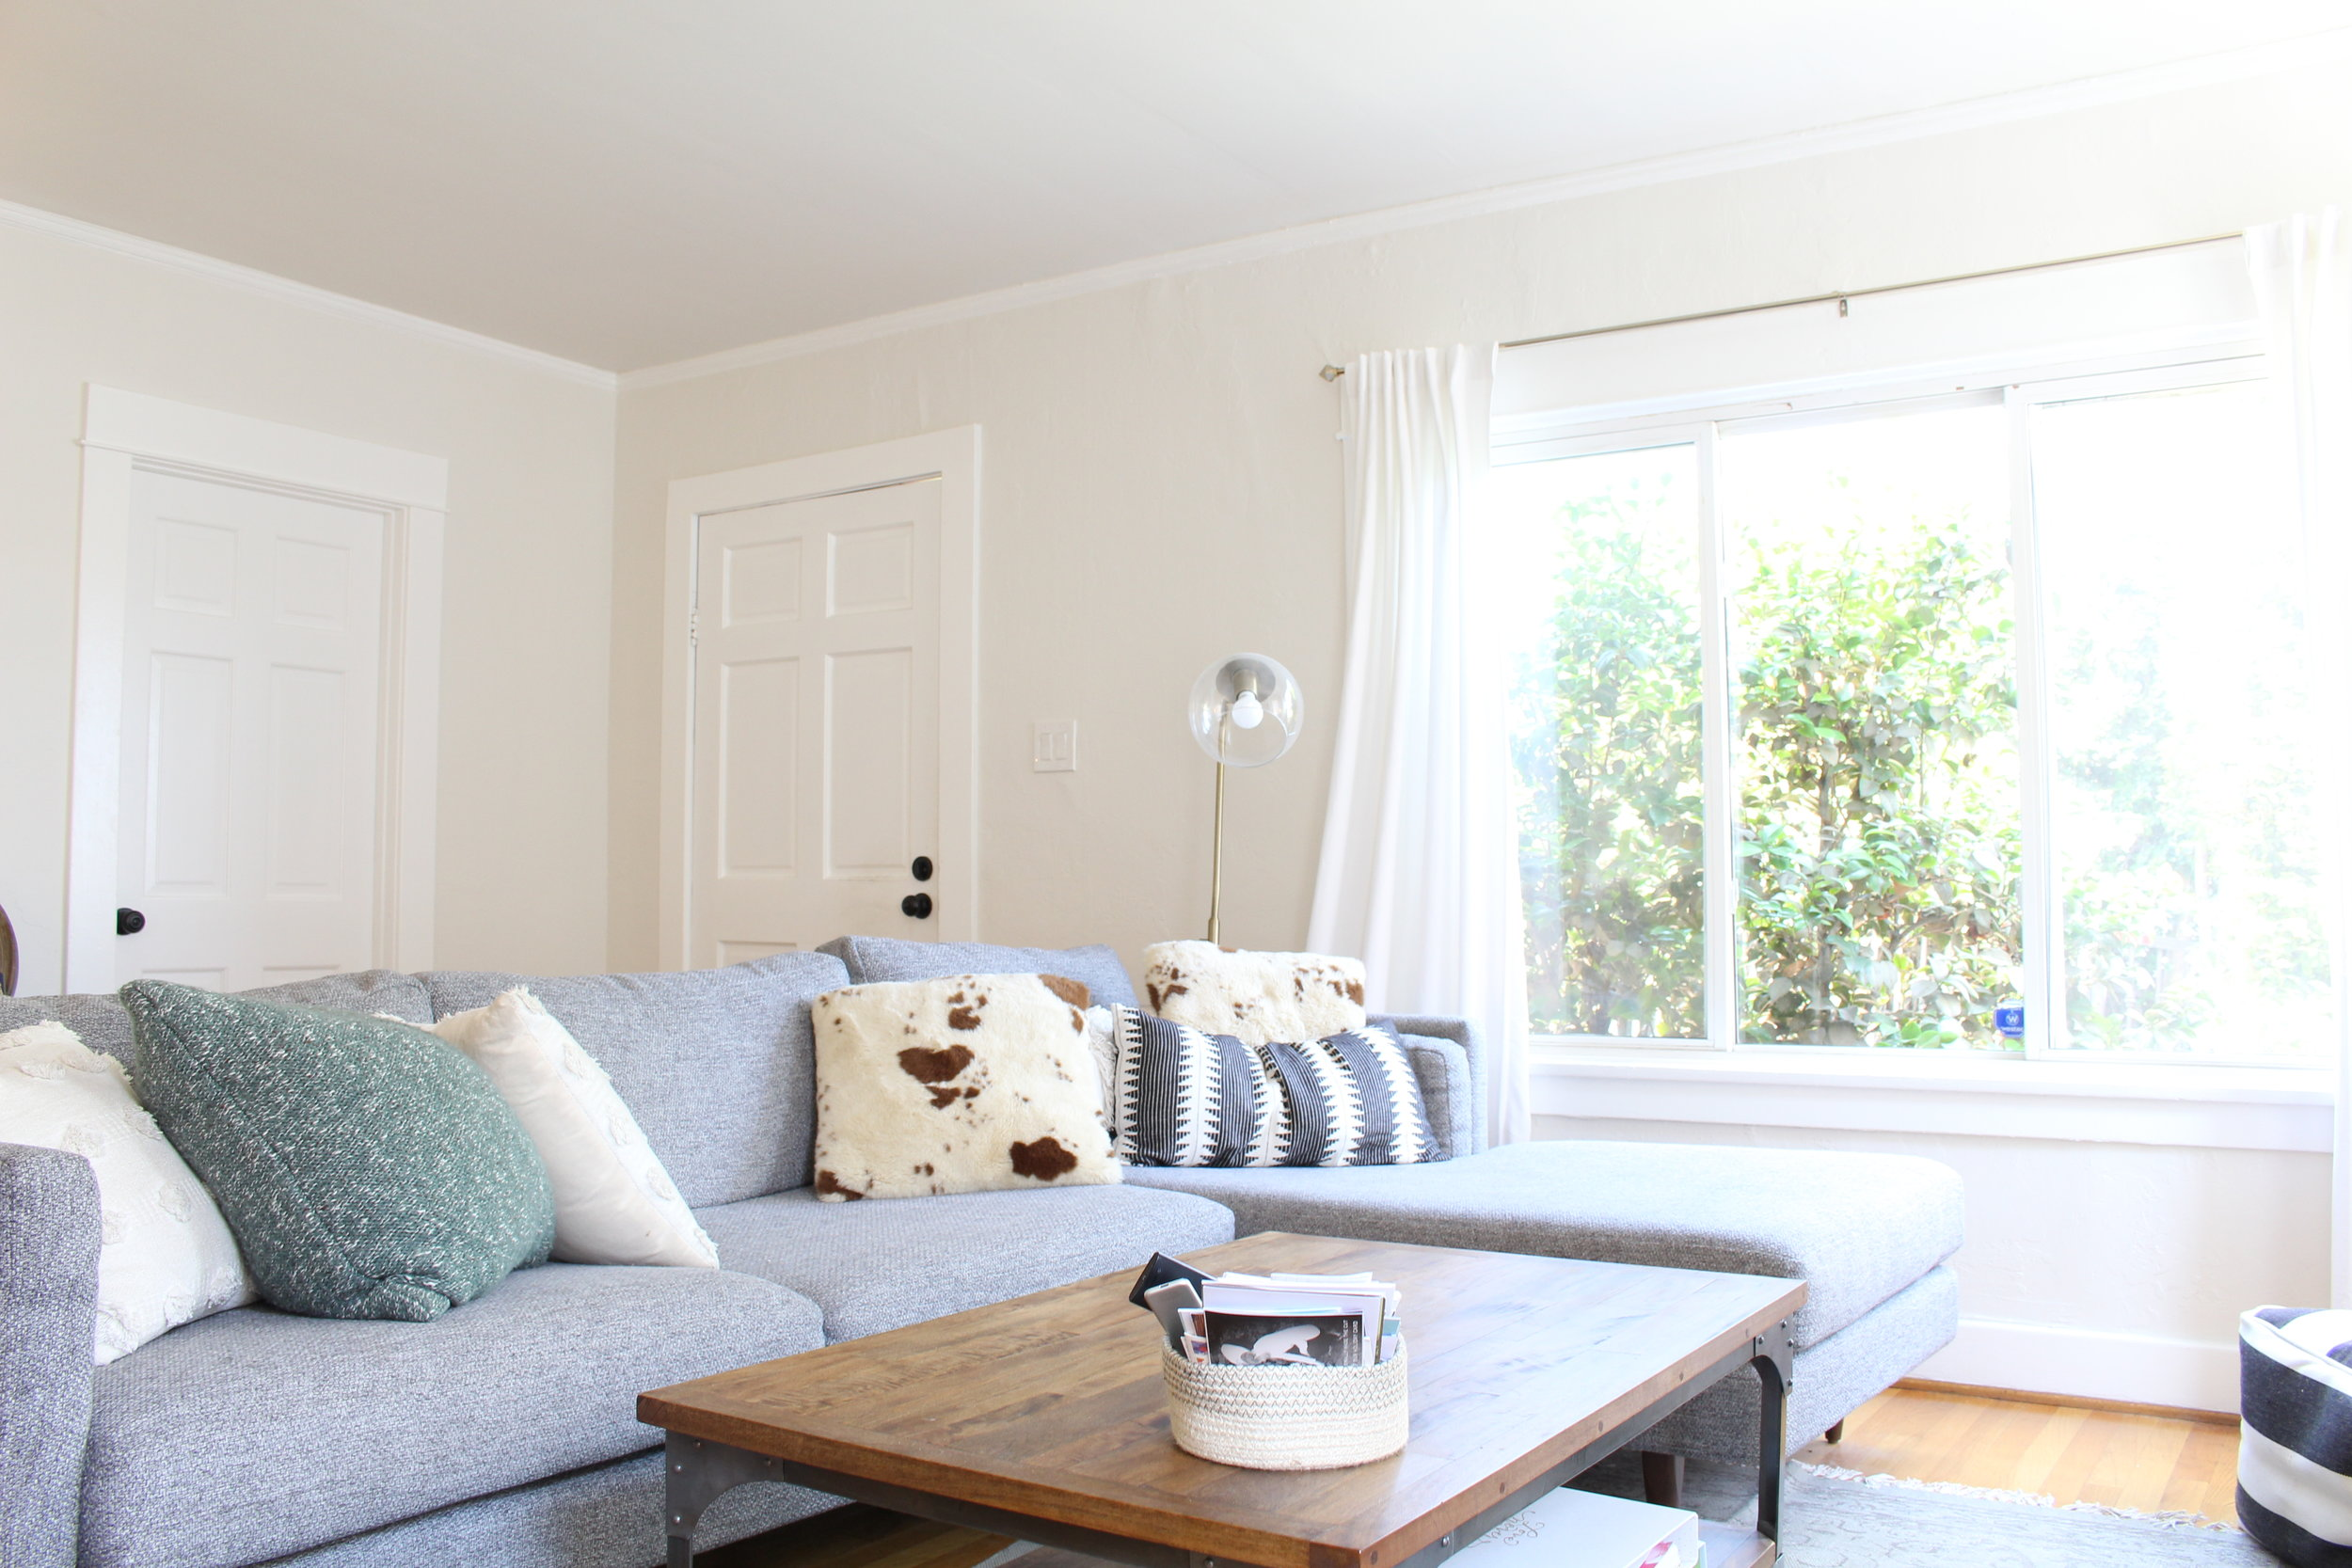 Home Tour_Couch